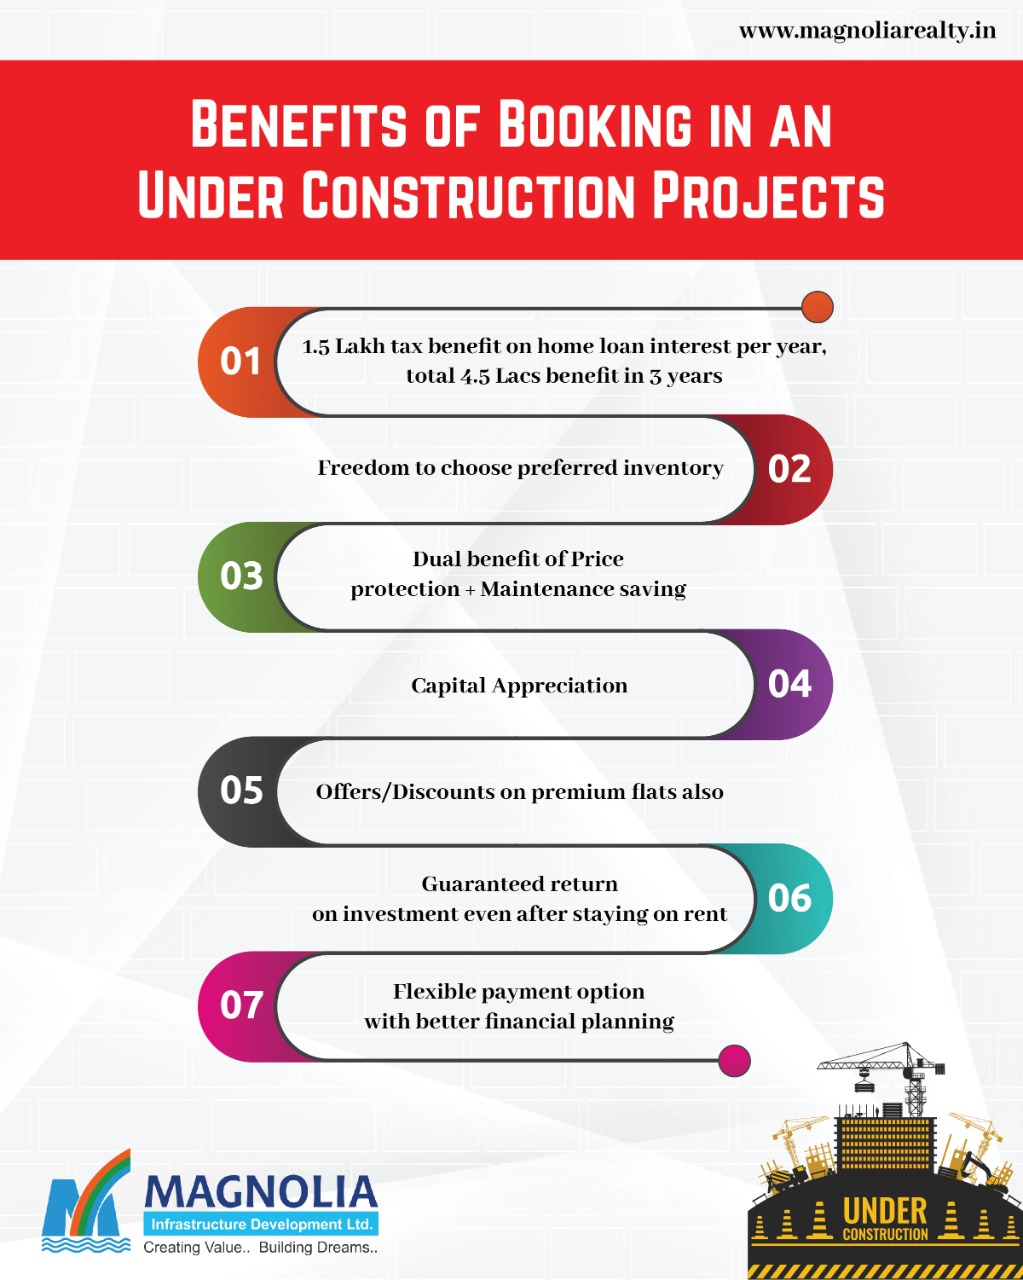 Benefits of booking in an under construction project